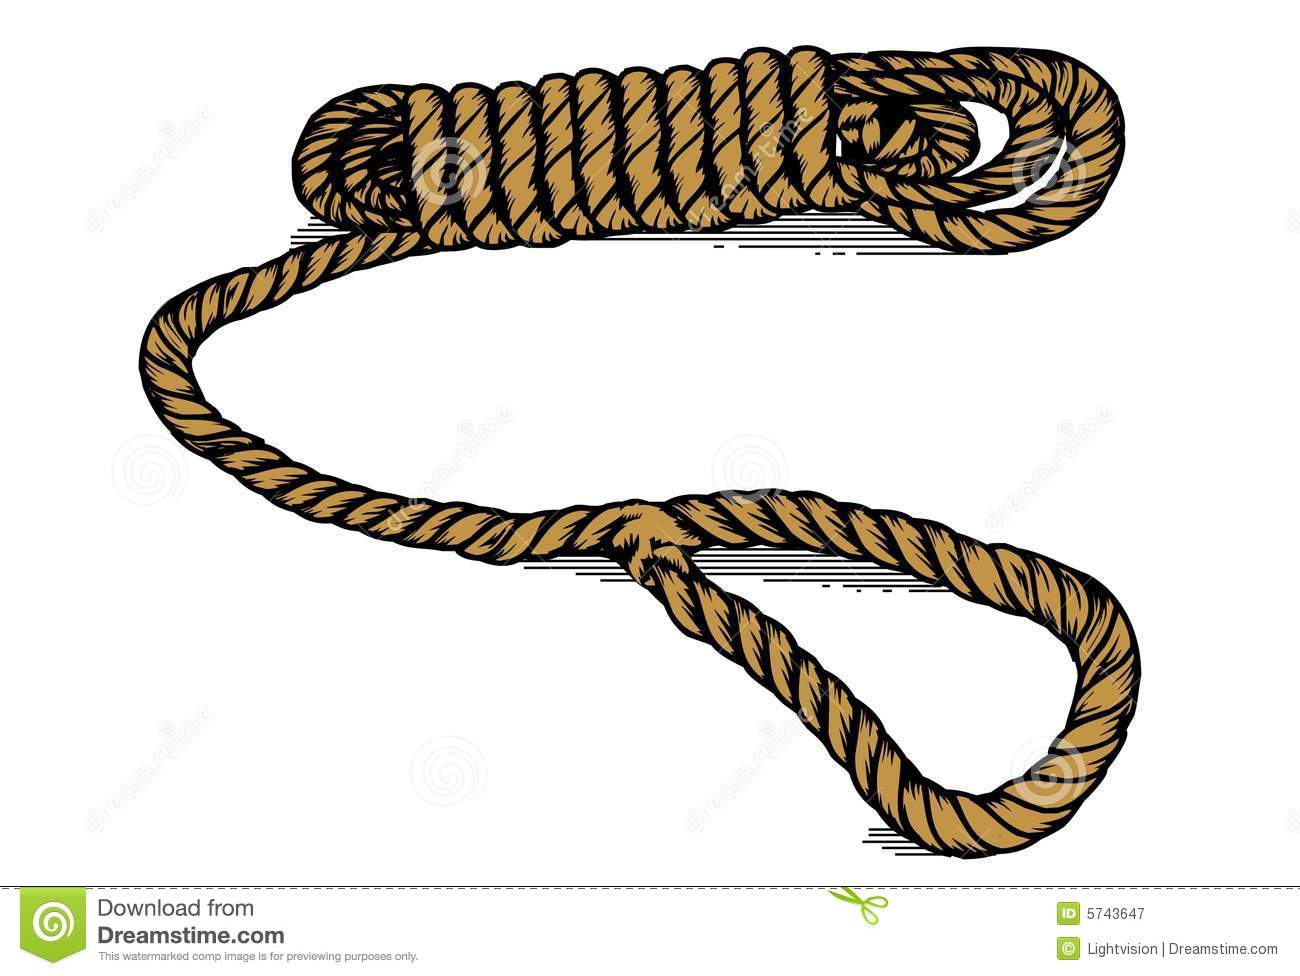 Rope clipart Free Clipart Images Panda Rope